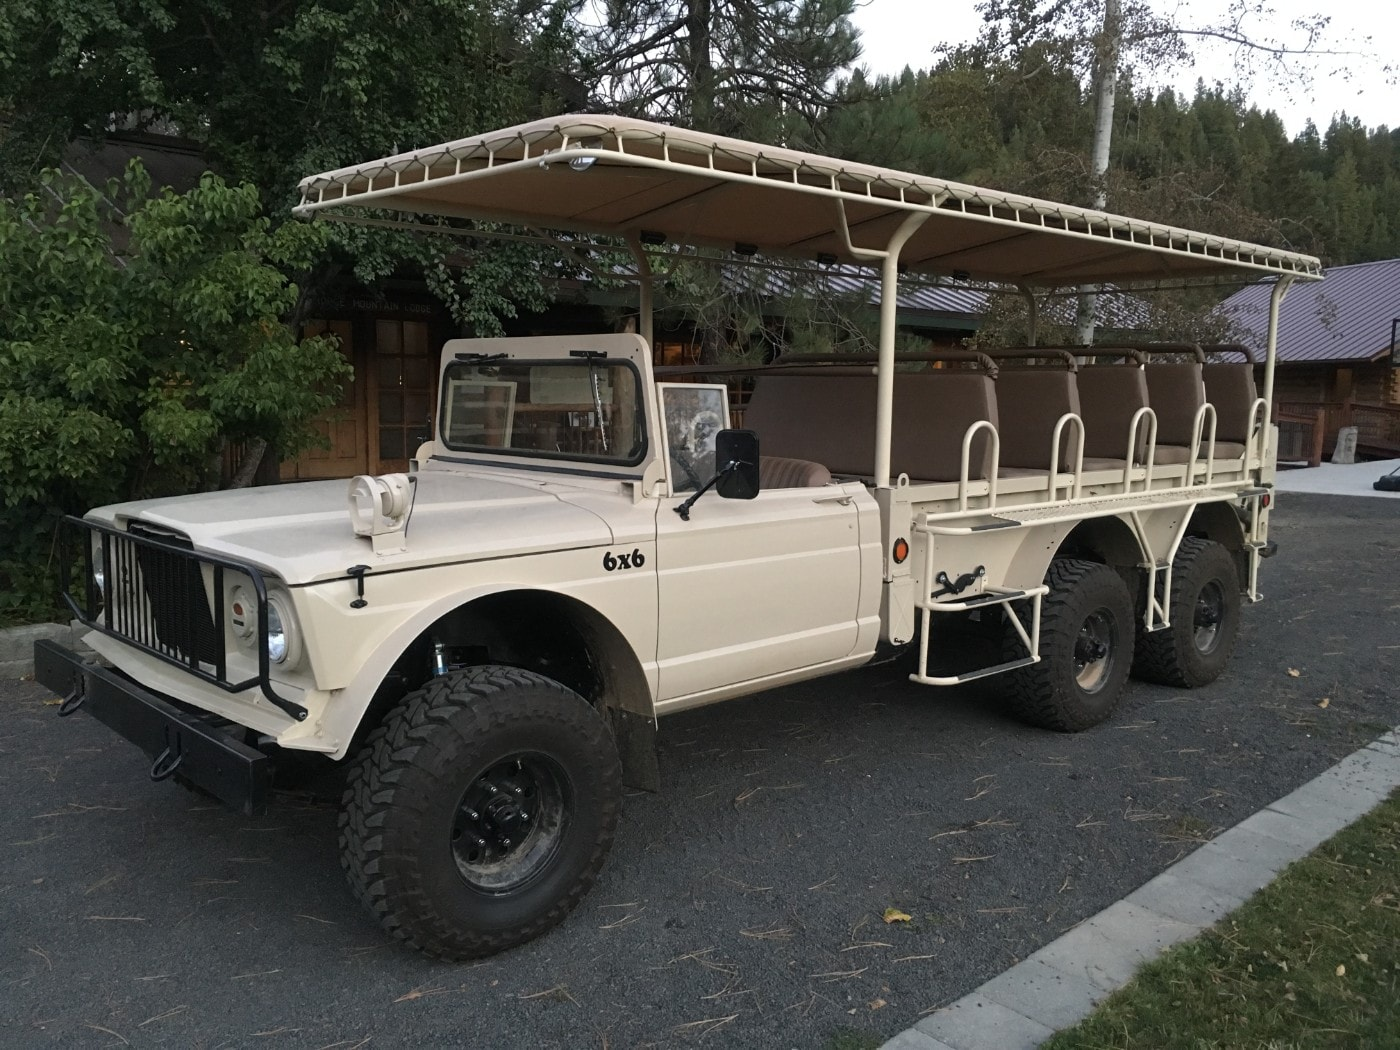 6x6 Jeep for Guests at Red Horse Mountain Ranch in Idaho